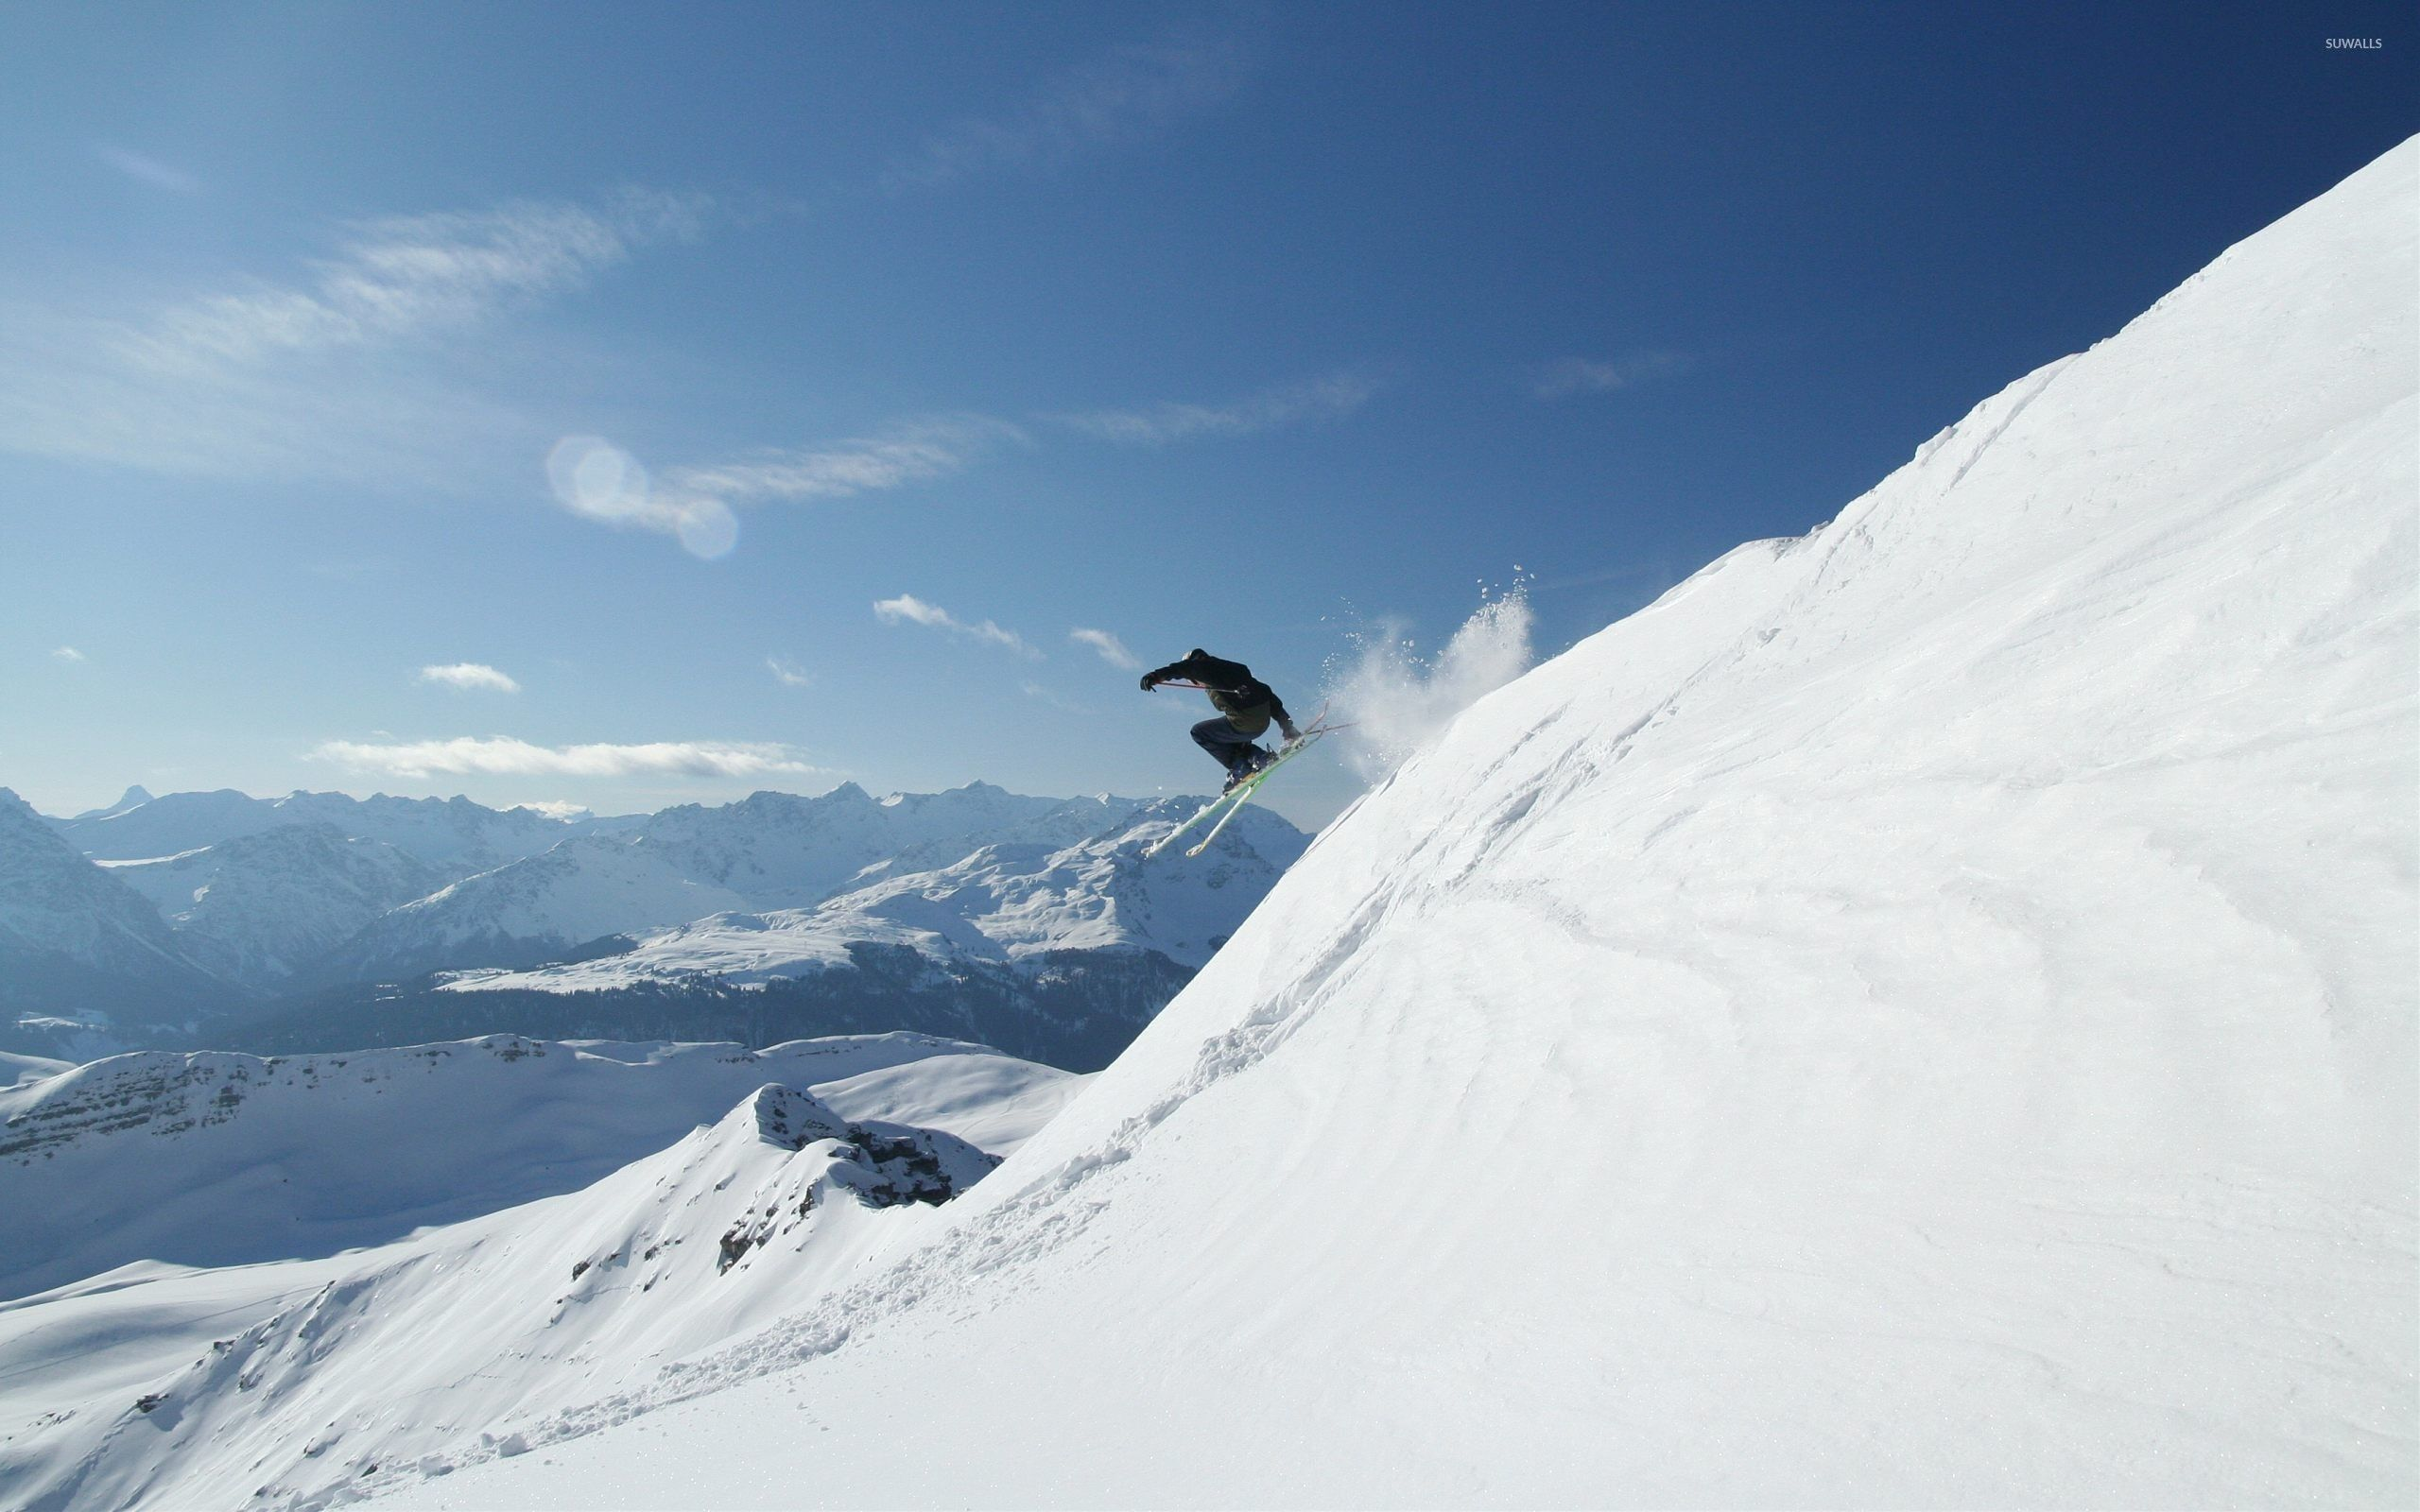 2560x1600 Beautiful day for skiing wallpaper - Nature wallpapers - #44443